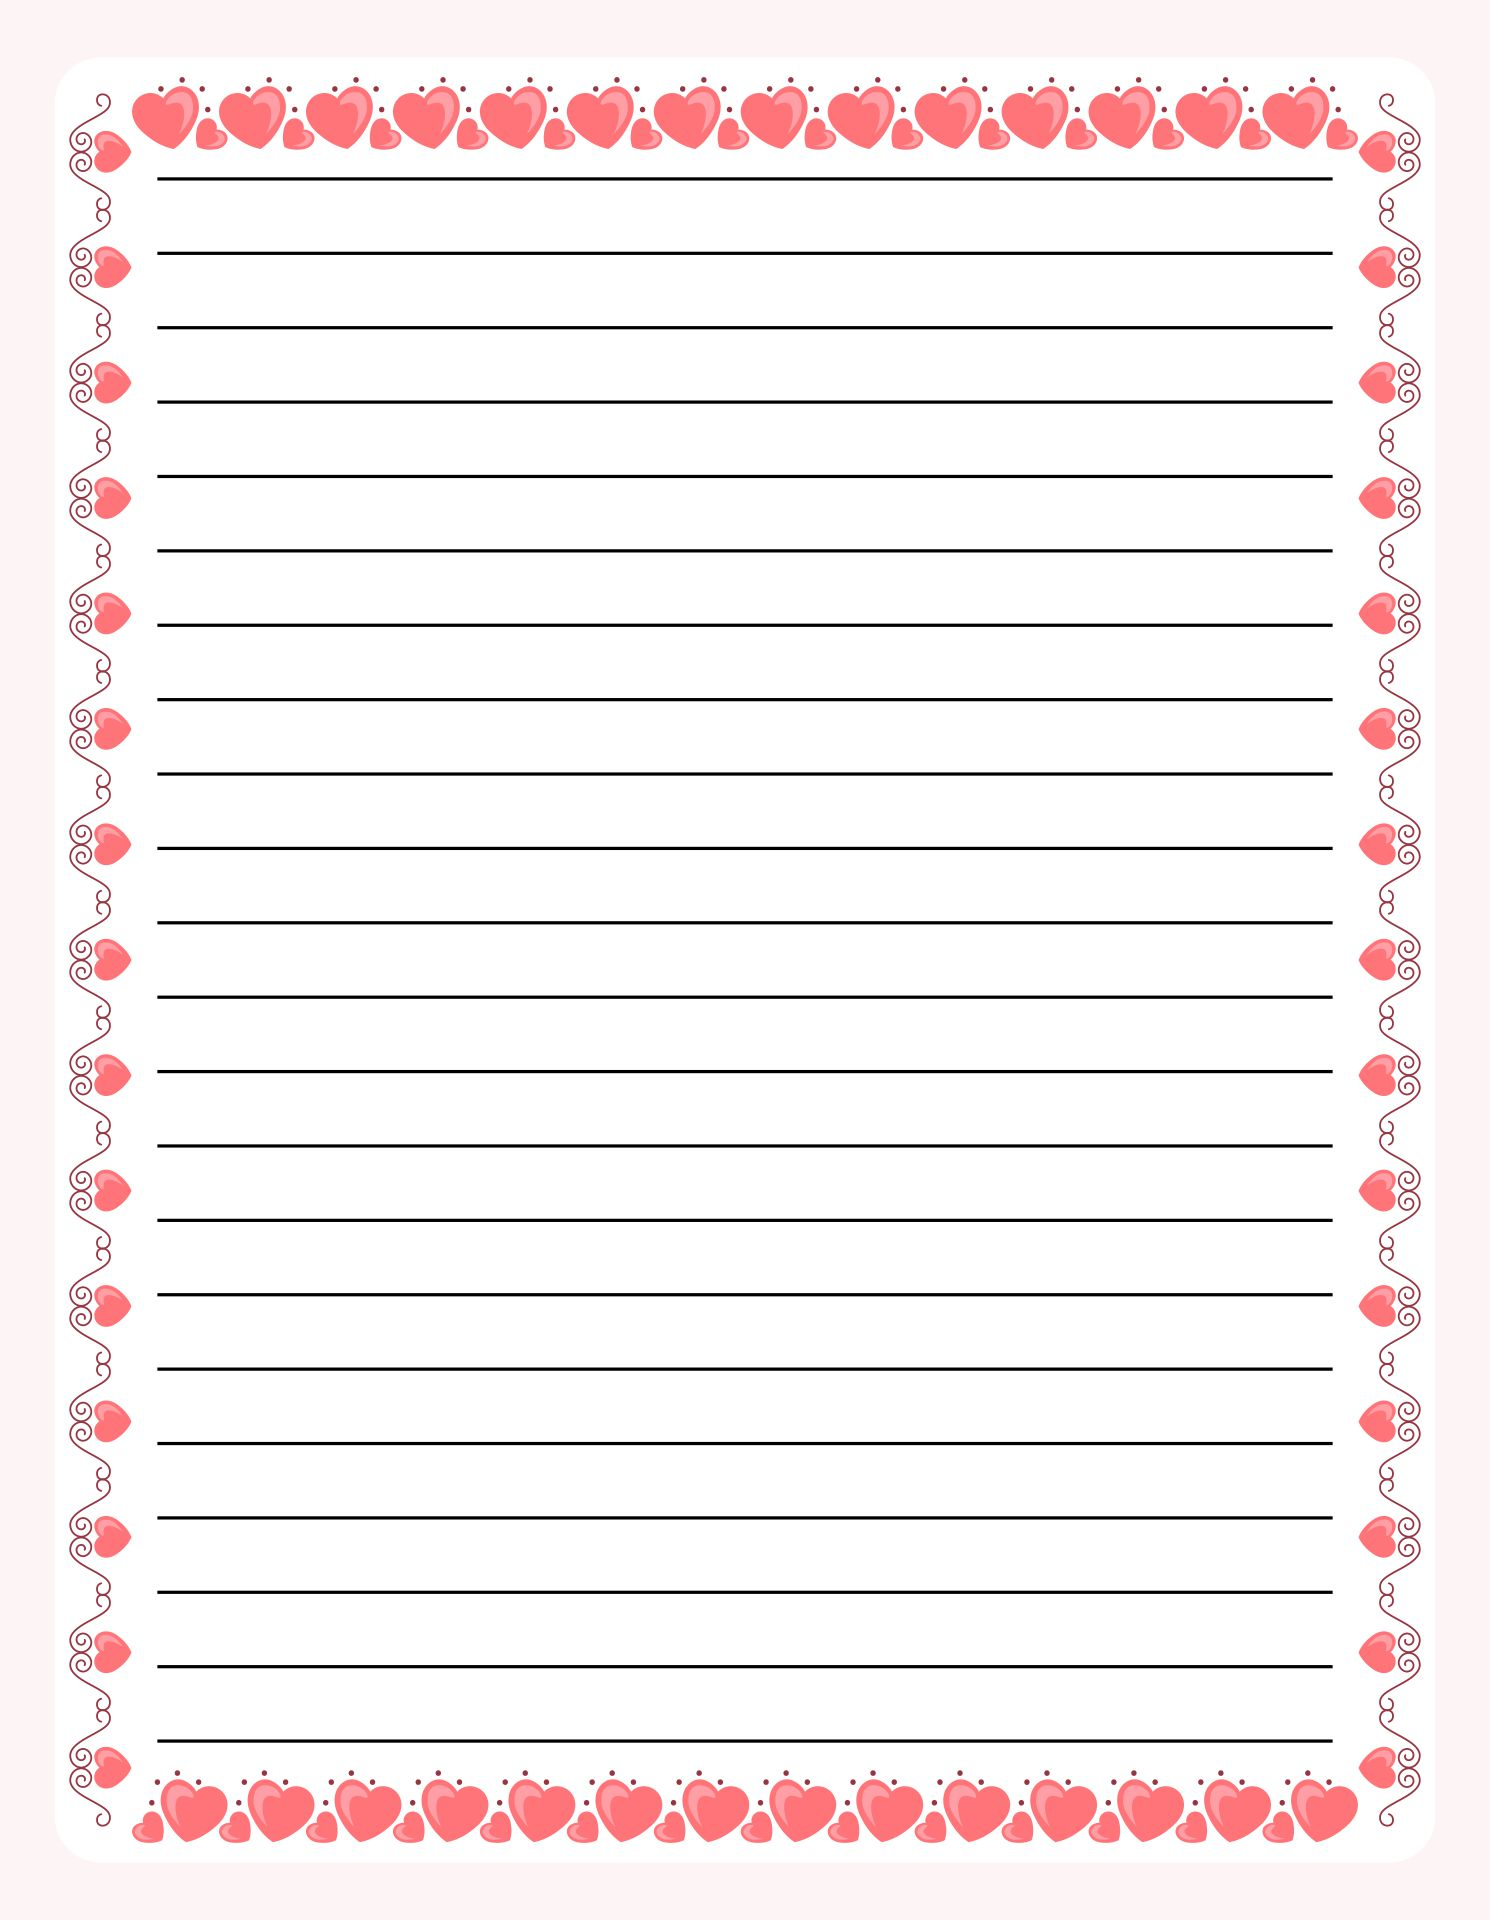 Printable Border Lined Writing Paper